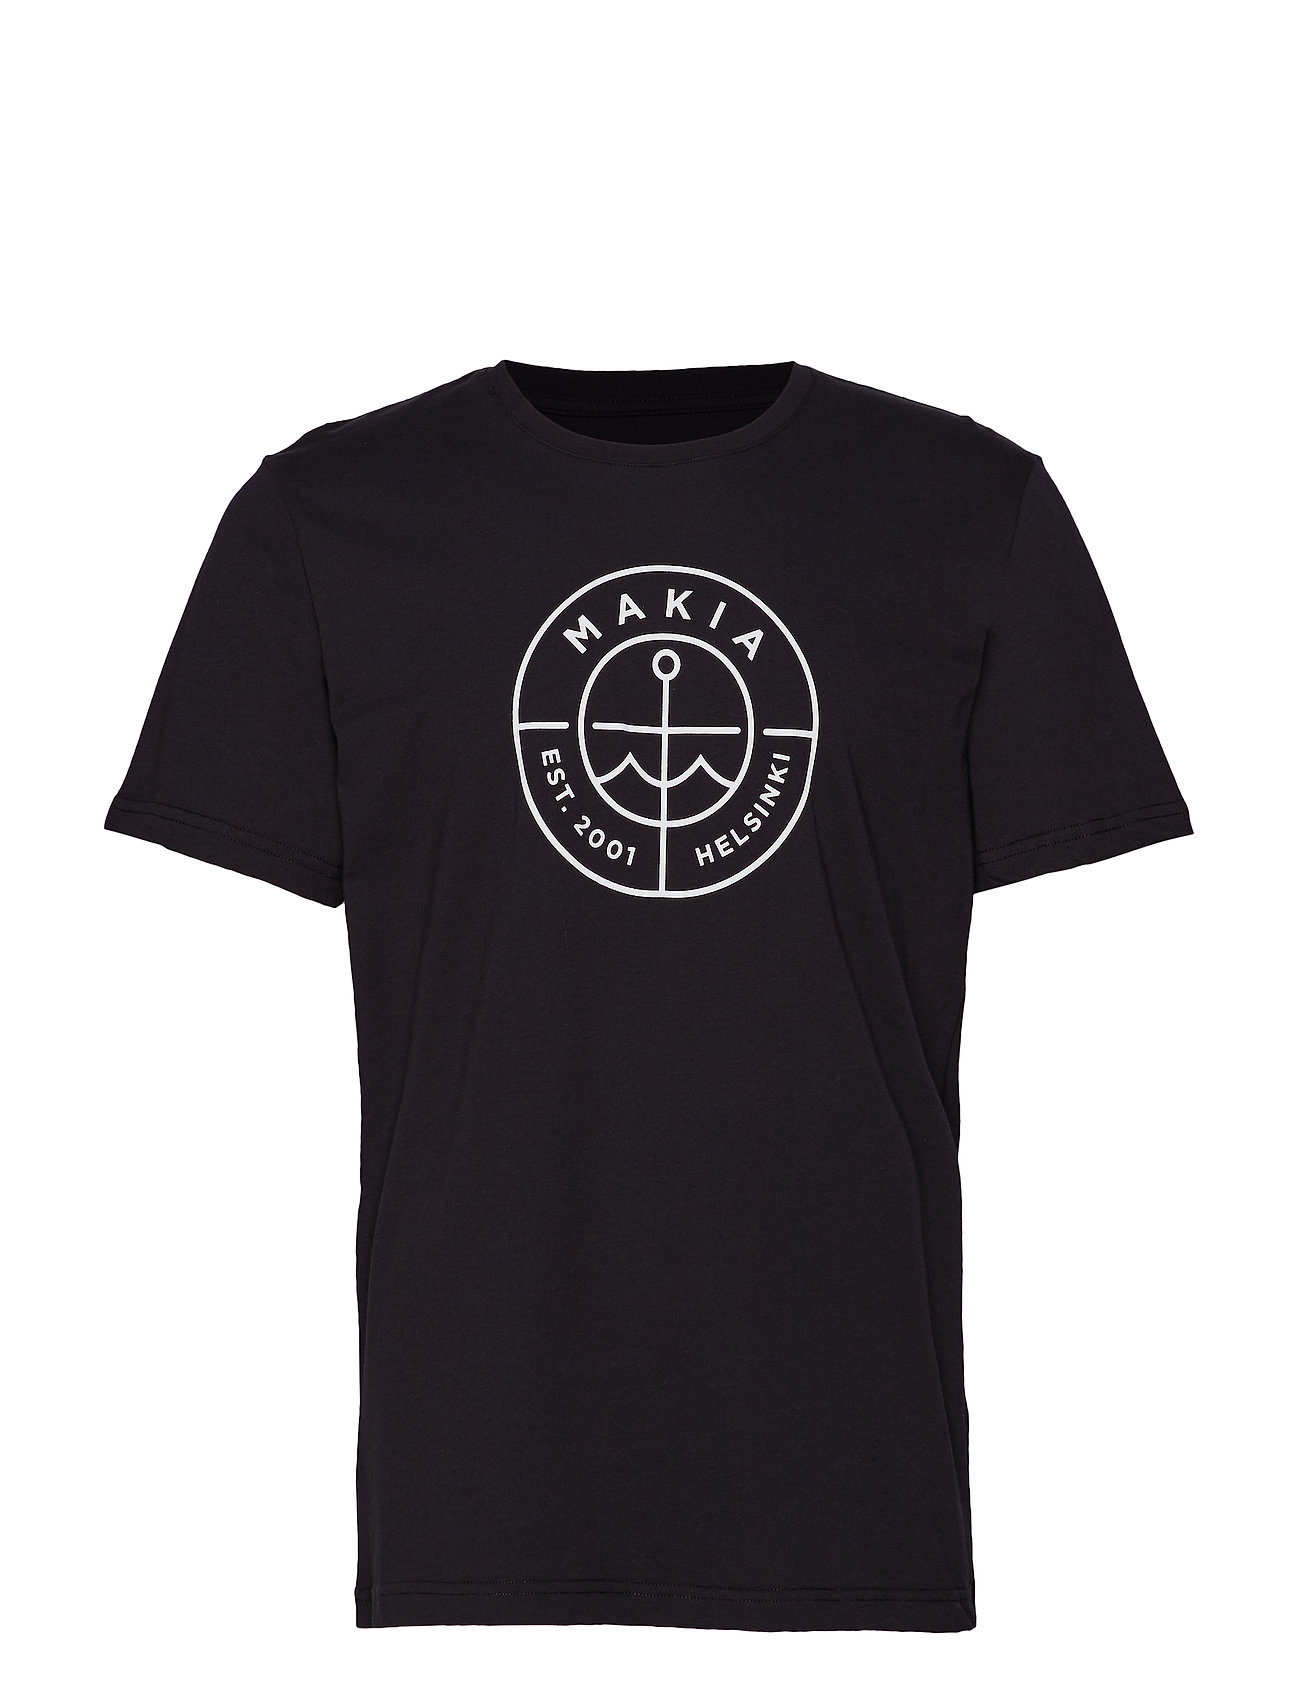 Makia Scope T-Shirt - BLACK